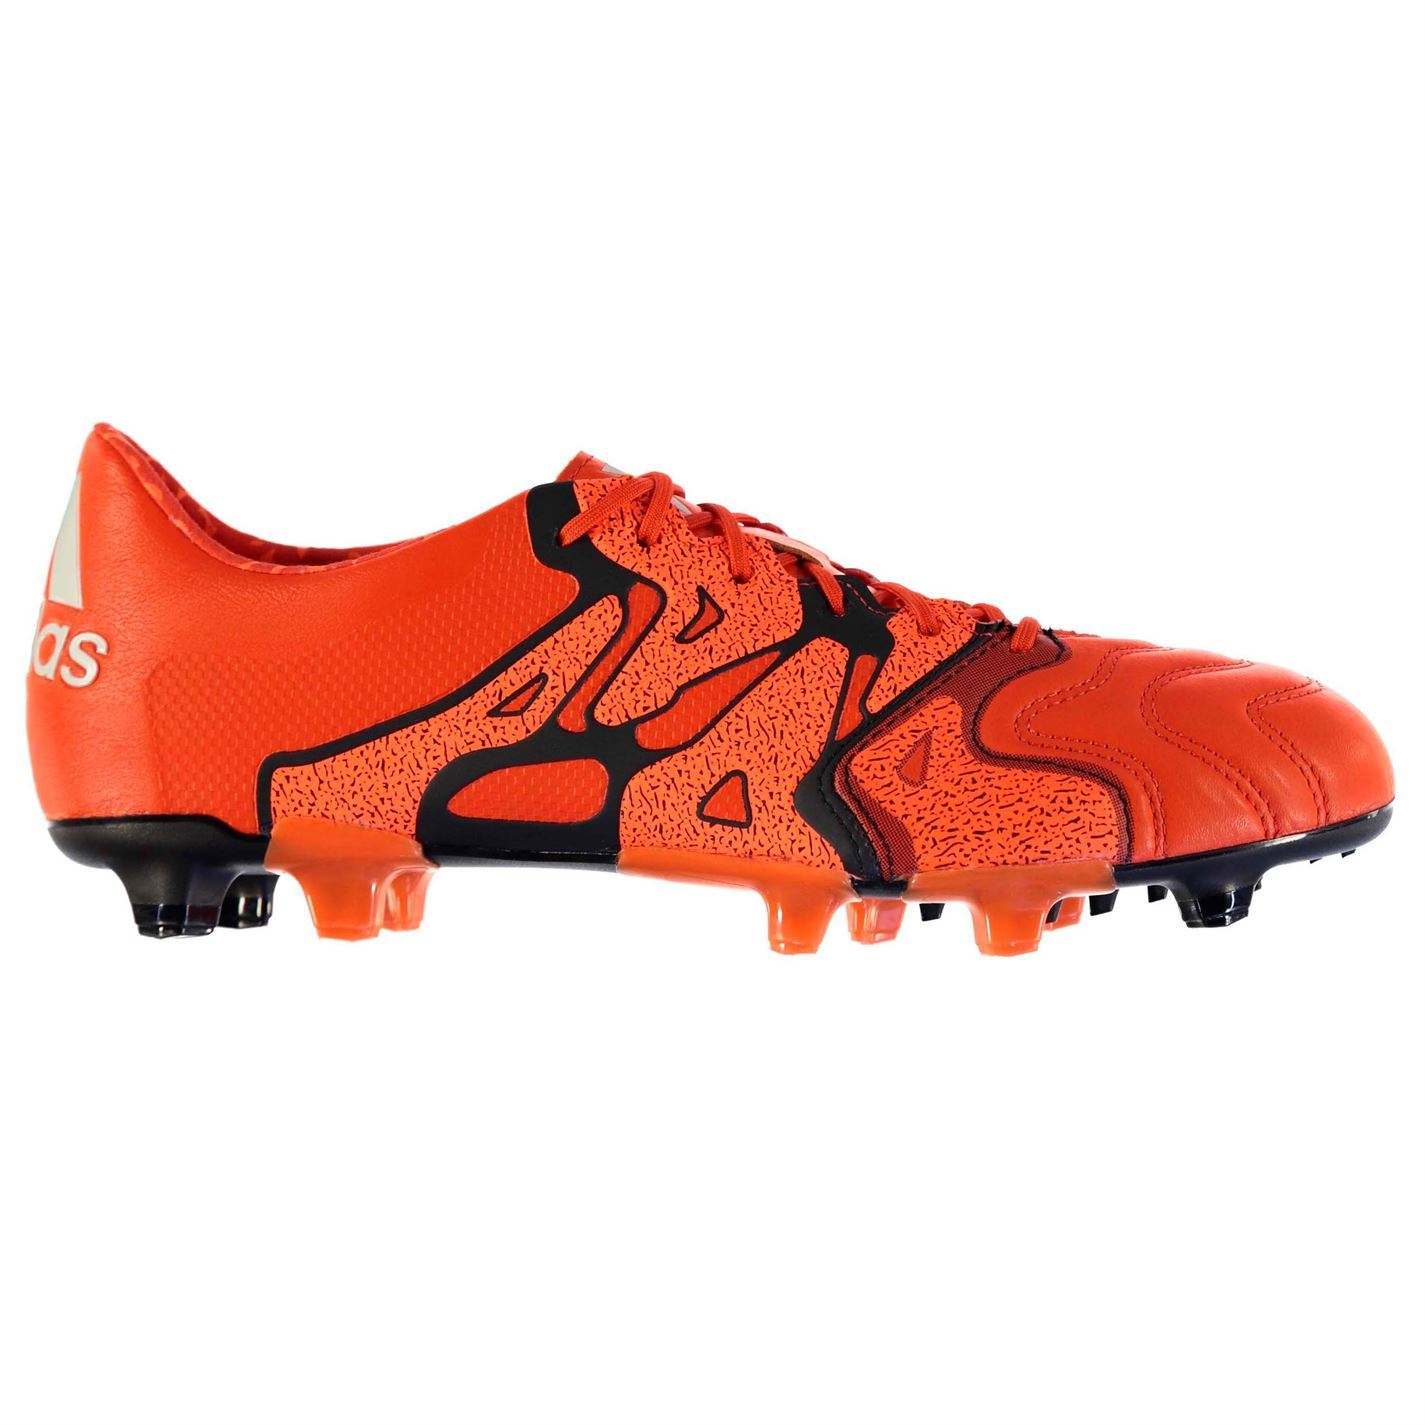 6e4969b4085 ... adidas X 15.1 Leather FG Firm Ground Football Boots Mens Or Soccer  Cleats Shoes ...